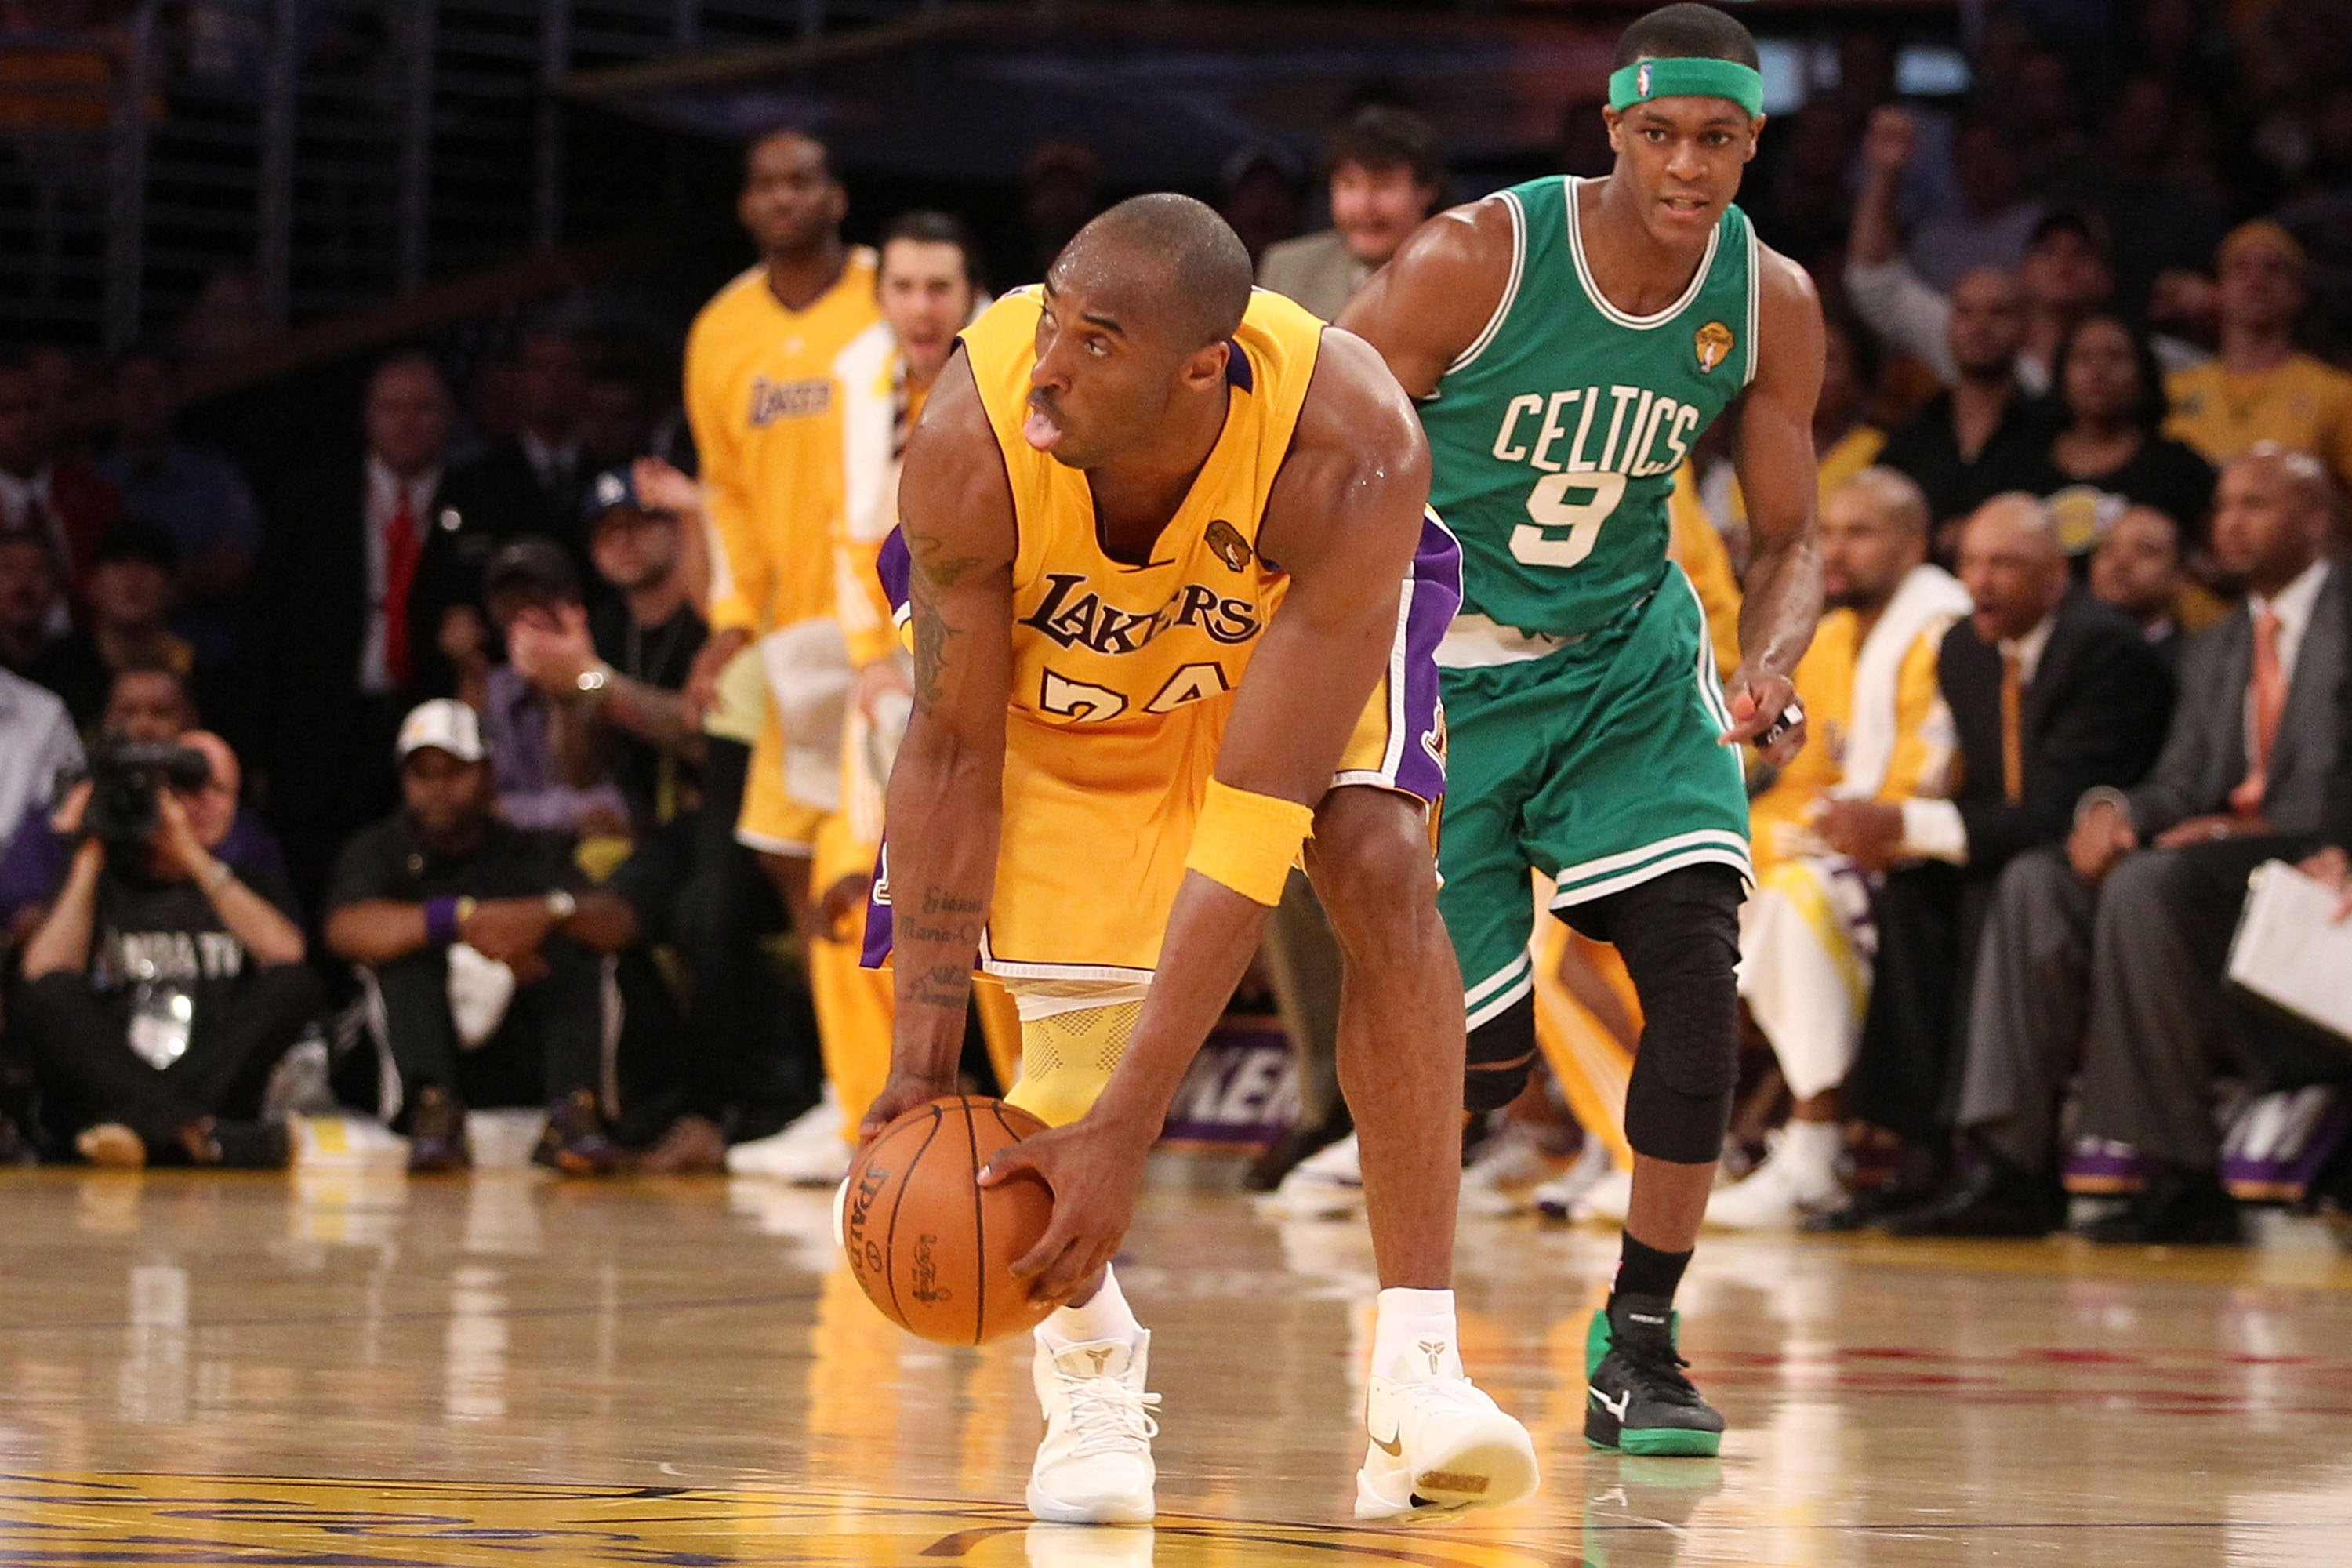 LOS ANGELES, CA - JUNE 15:  Kobe Bryant #24 of the Los Angeles Lakers grabs the ball and heads up court against the Boston Celtics in Game Six of the 2010 NBA Finals at Staples Center on June 15, 2010 in Los Angeles, California.  NOTE TO USER: User expres